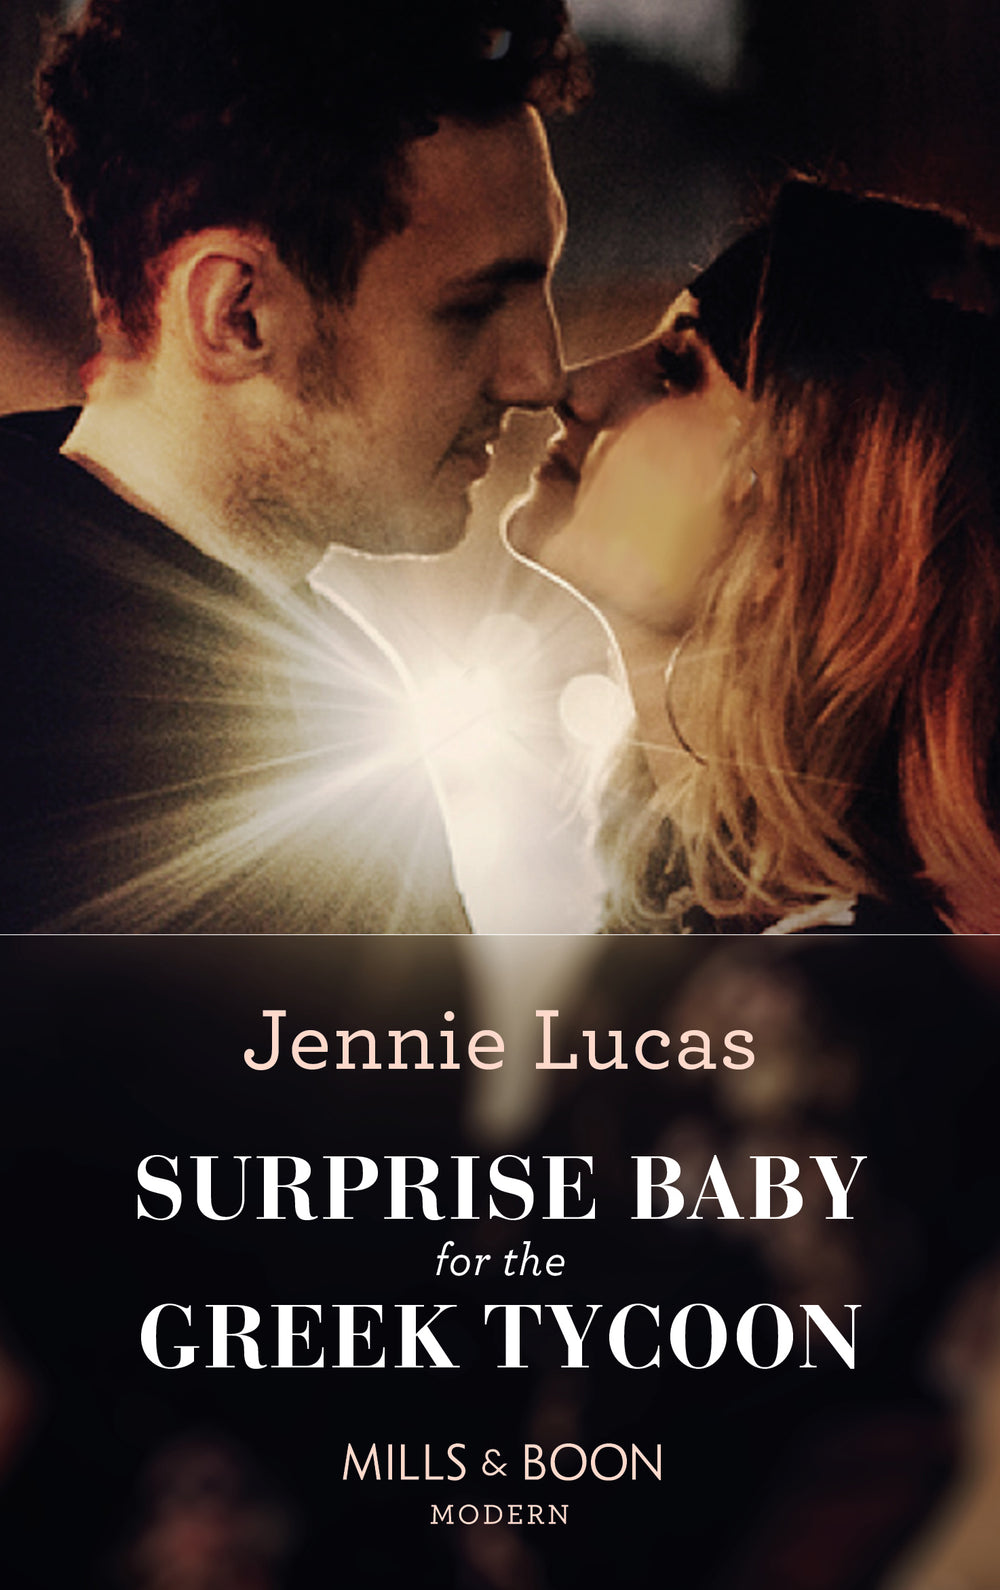 Surprise Baby for the Greek Tycoon - Chapter 4